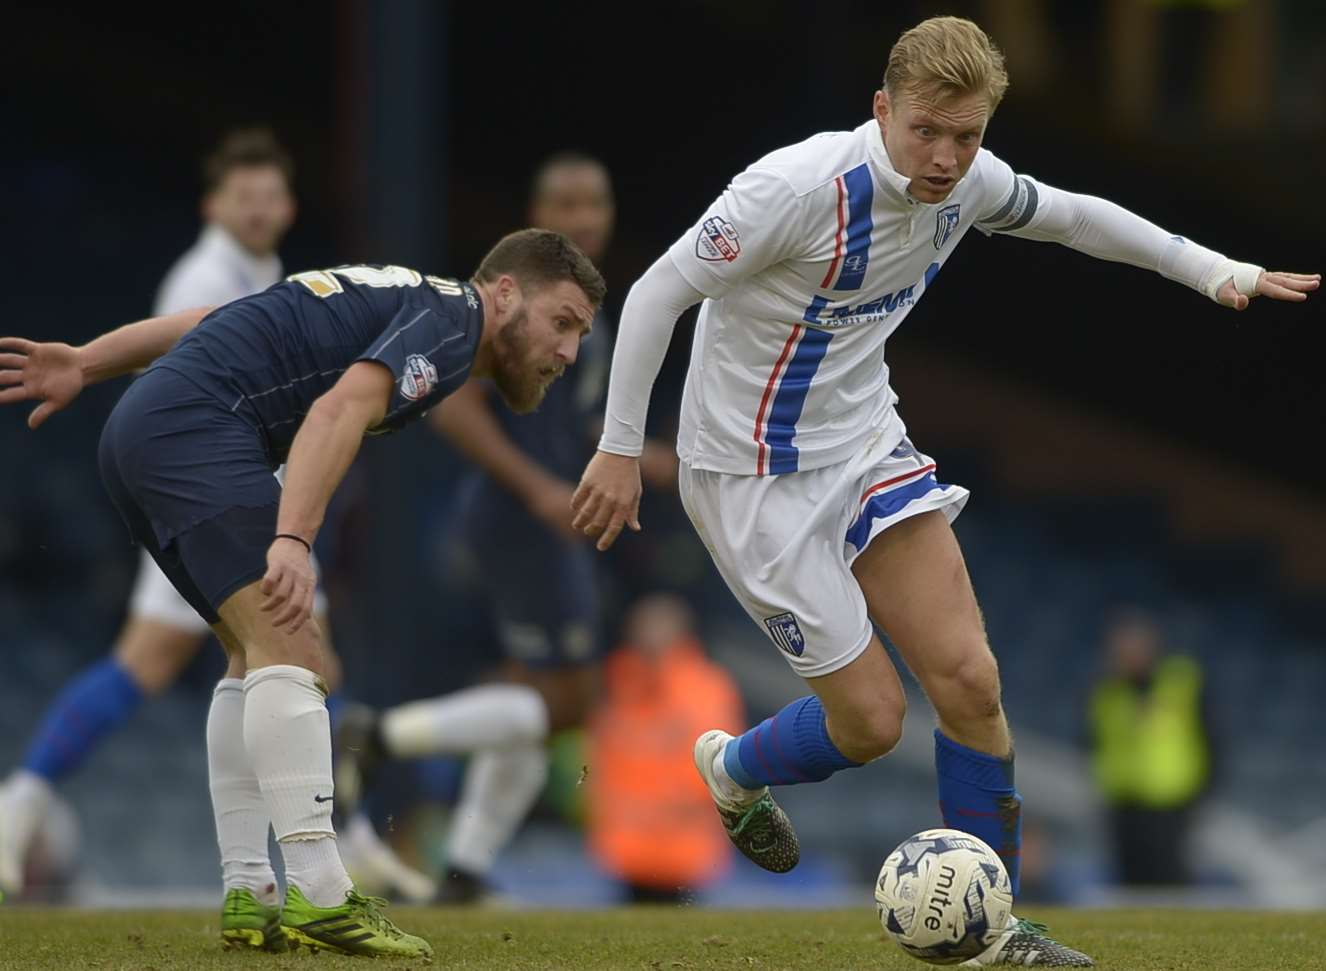 Gills captain Josh Wright in action against Southend.Picture: Barry Goodwin